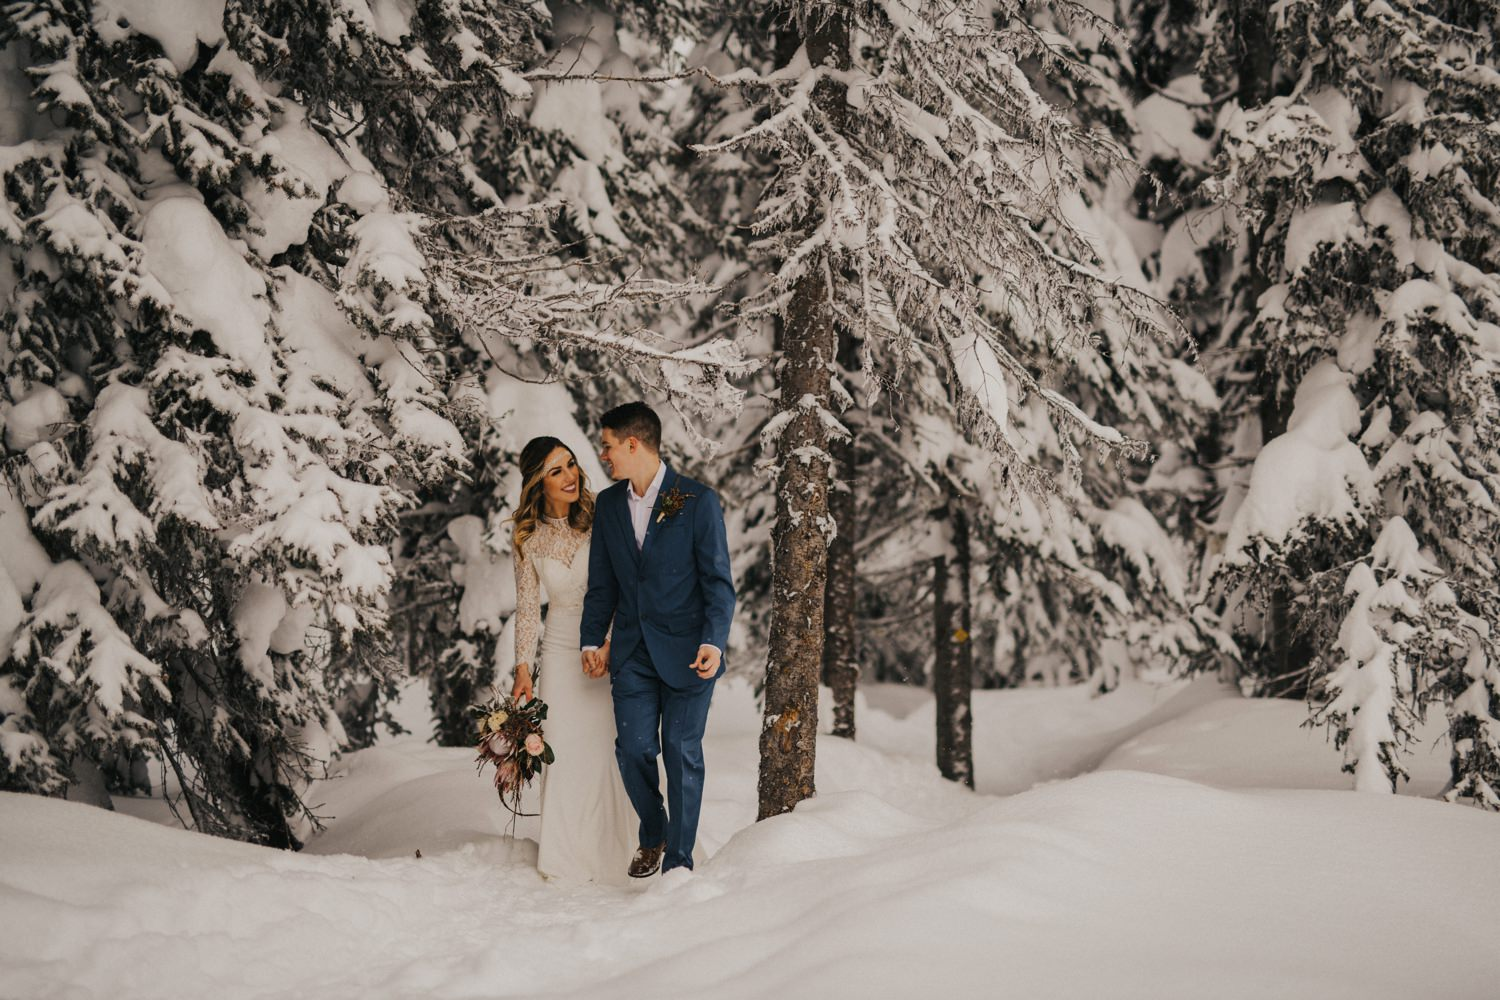 Okanagan Winter Elopement - Joelsview Photography_0001